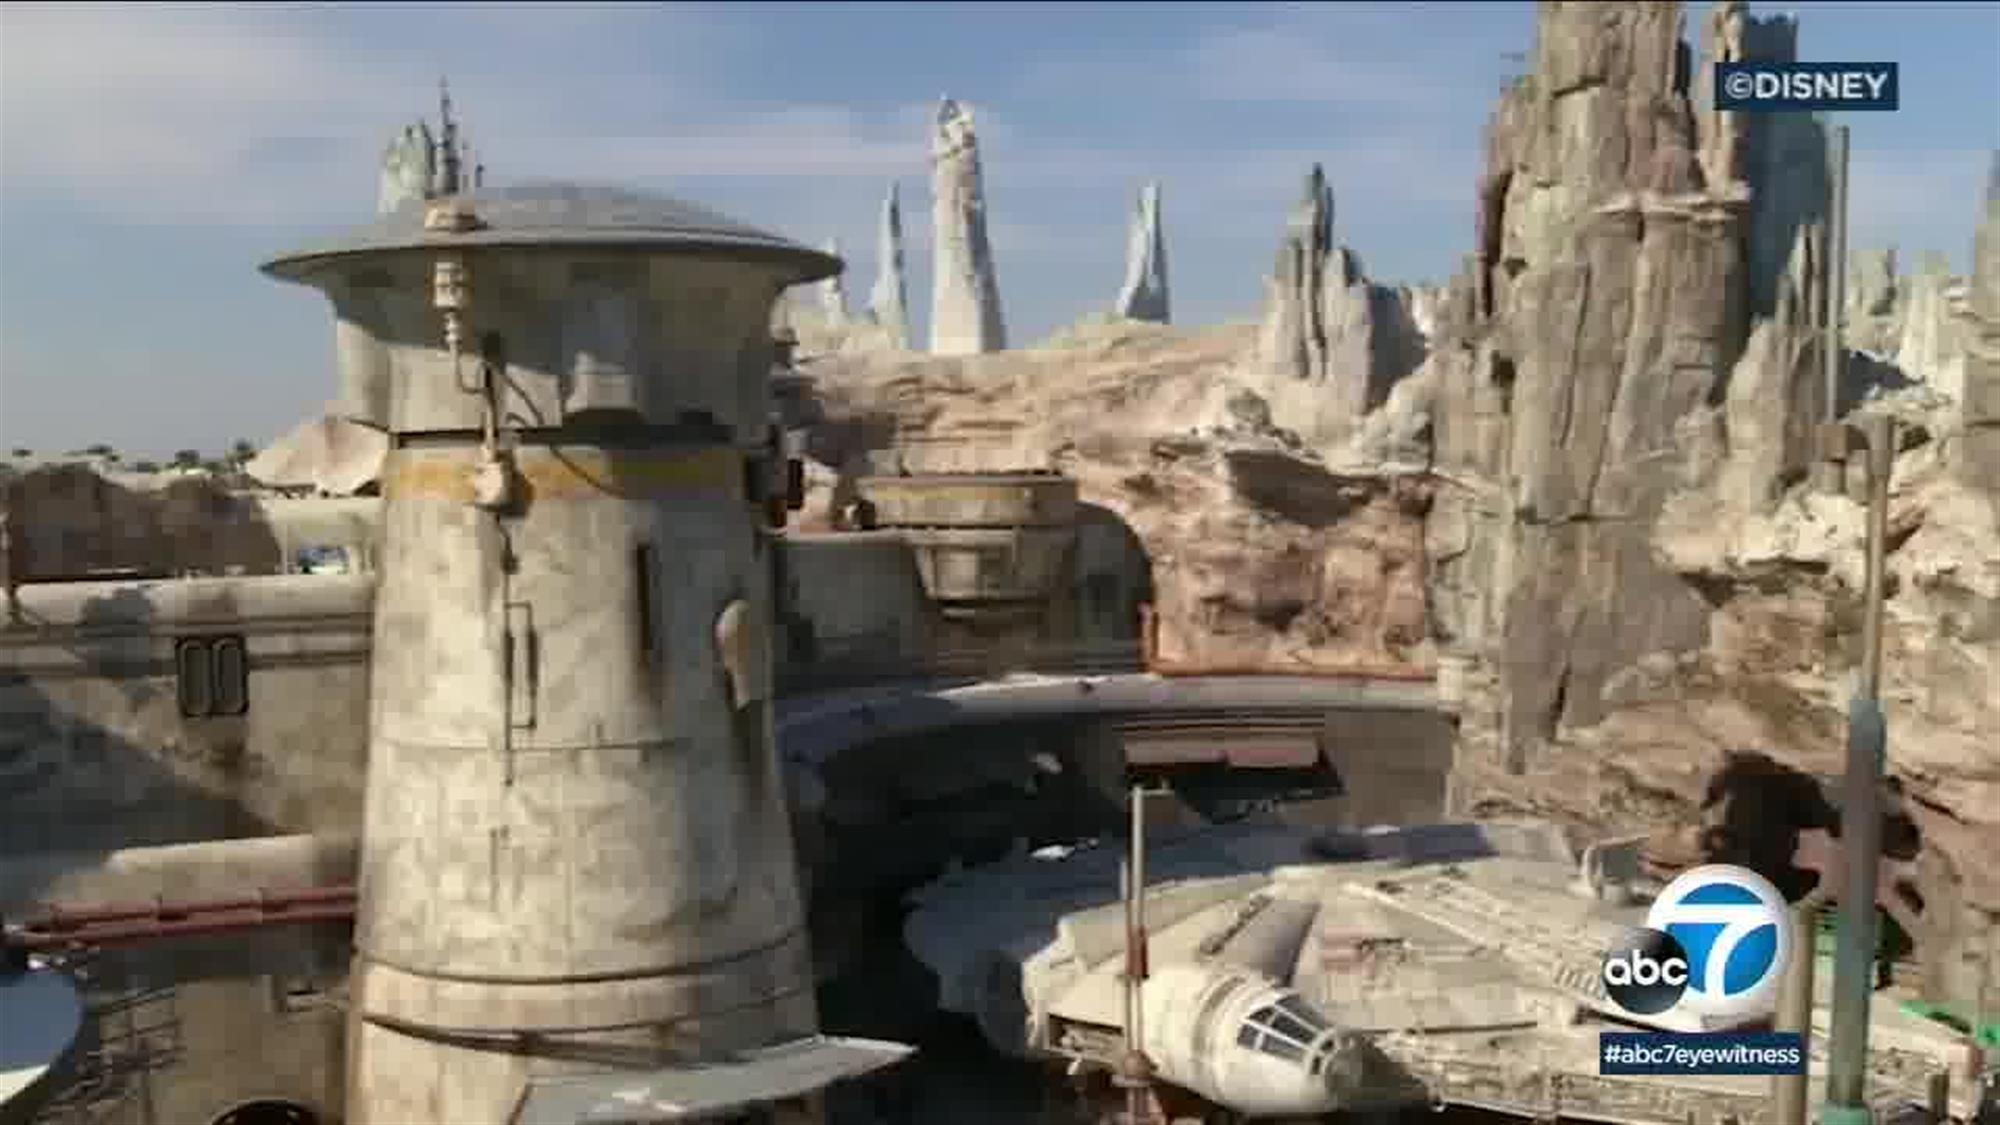 Black Spire Outpost is named after the mysterious petrified tree structure that forms its core, but other large spires loom in the distance, giving a sense of depth and size to Batuu.